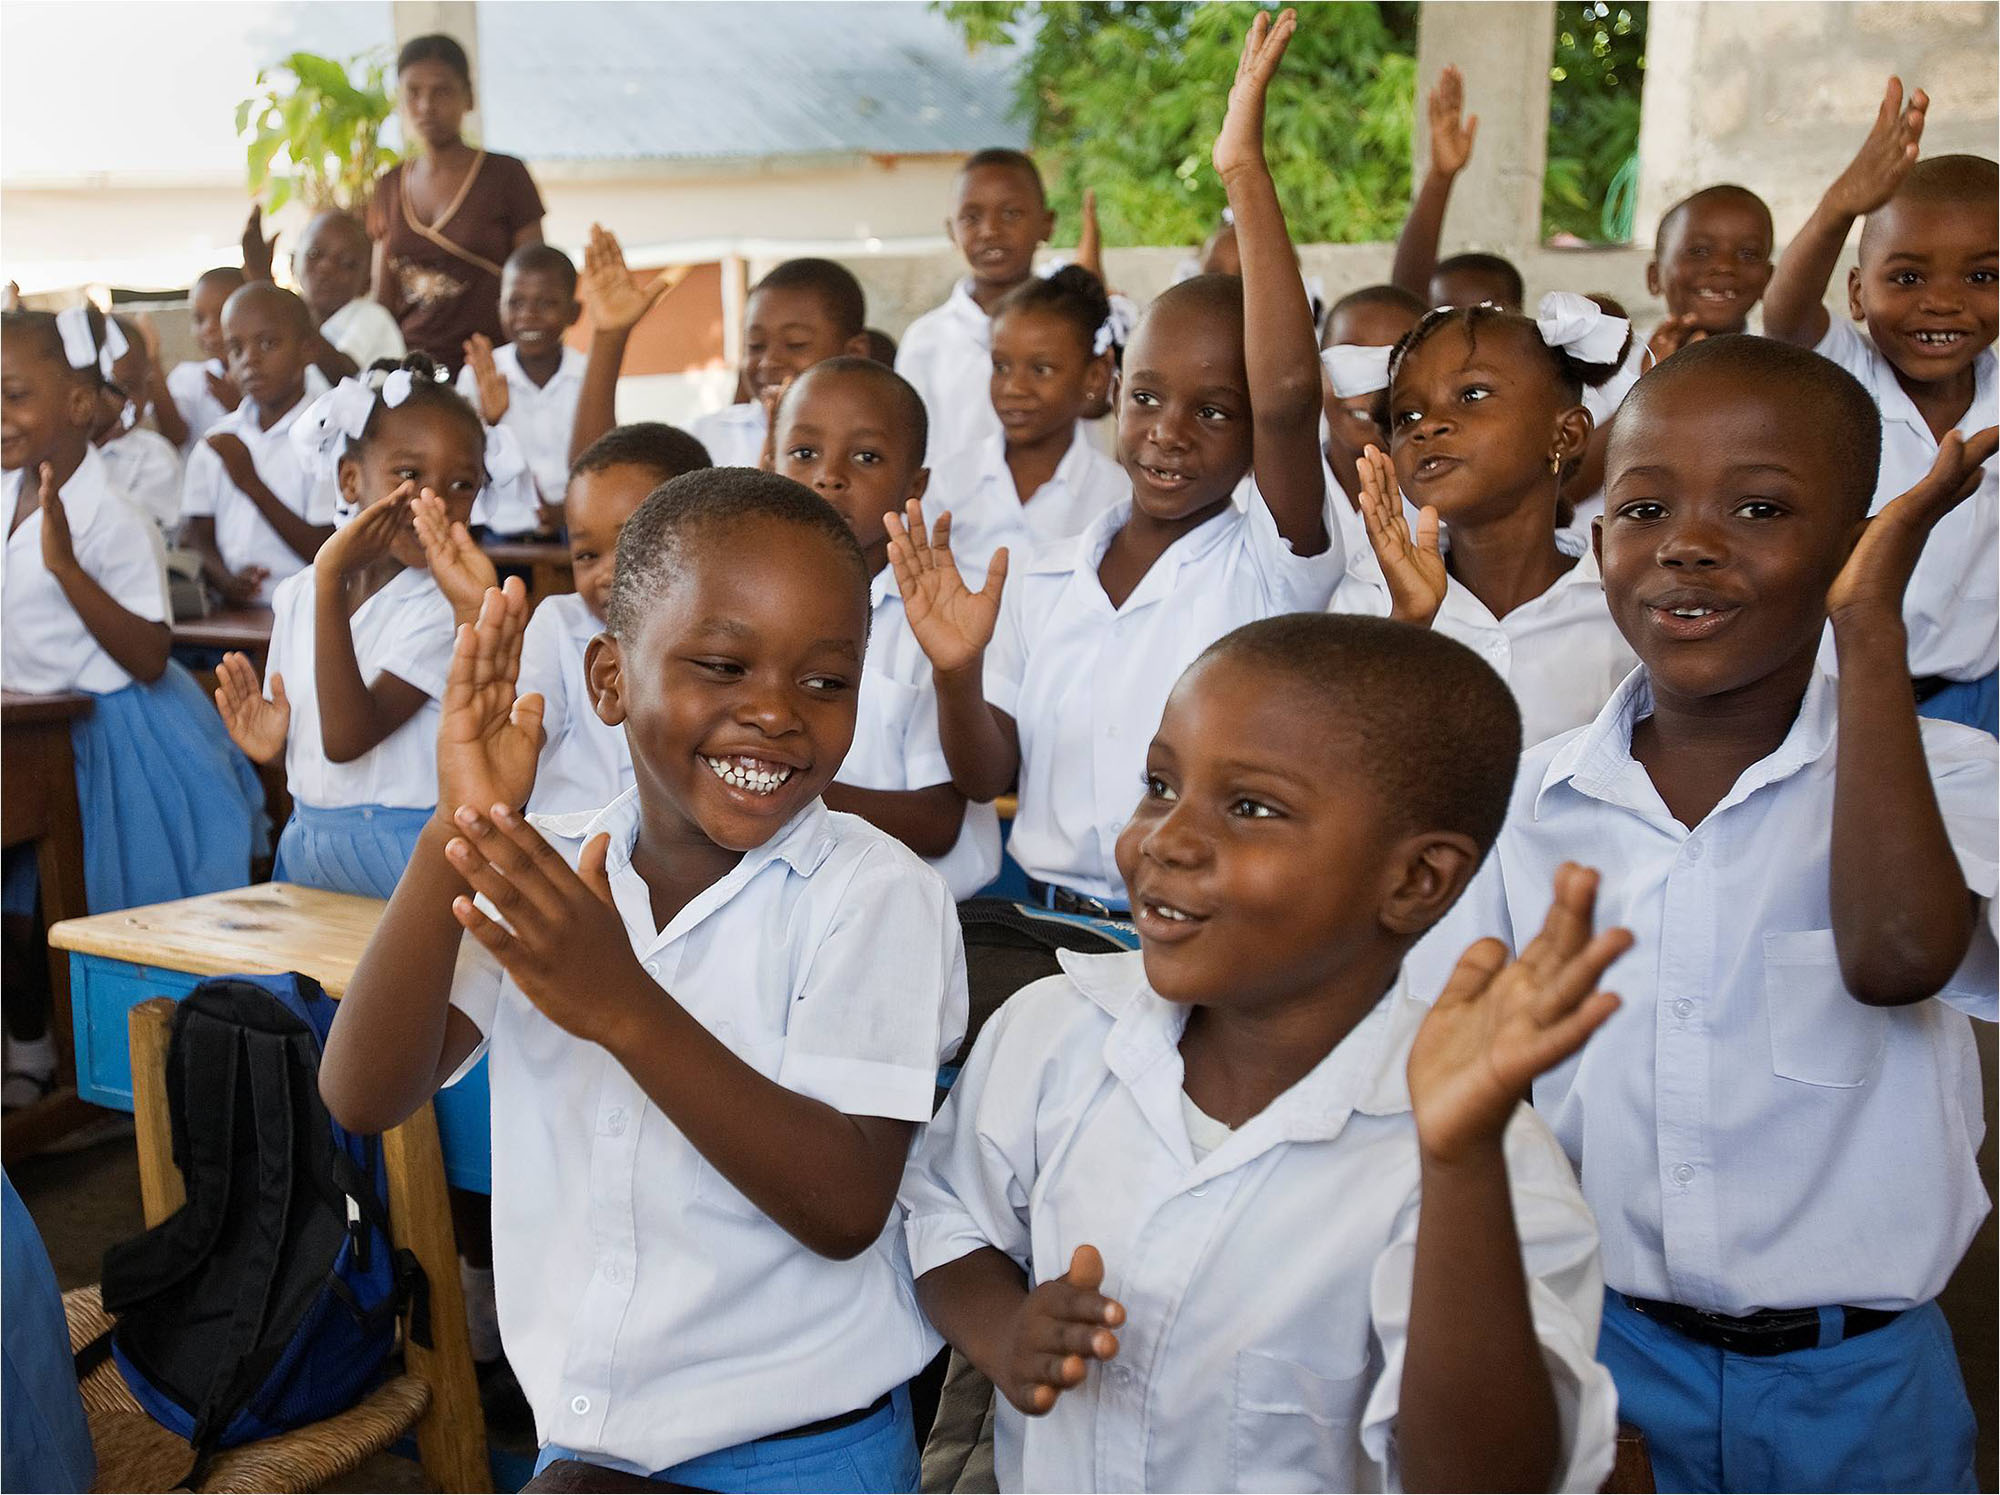 Haiti S Children Will Get Better Access To Quality